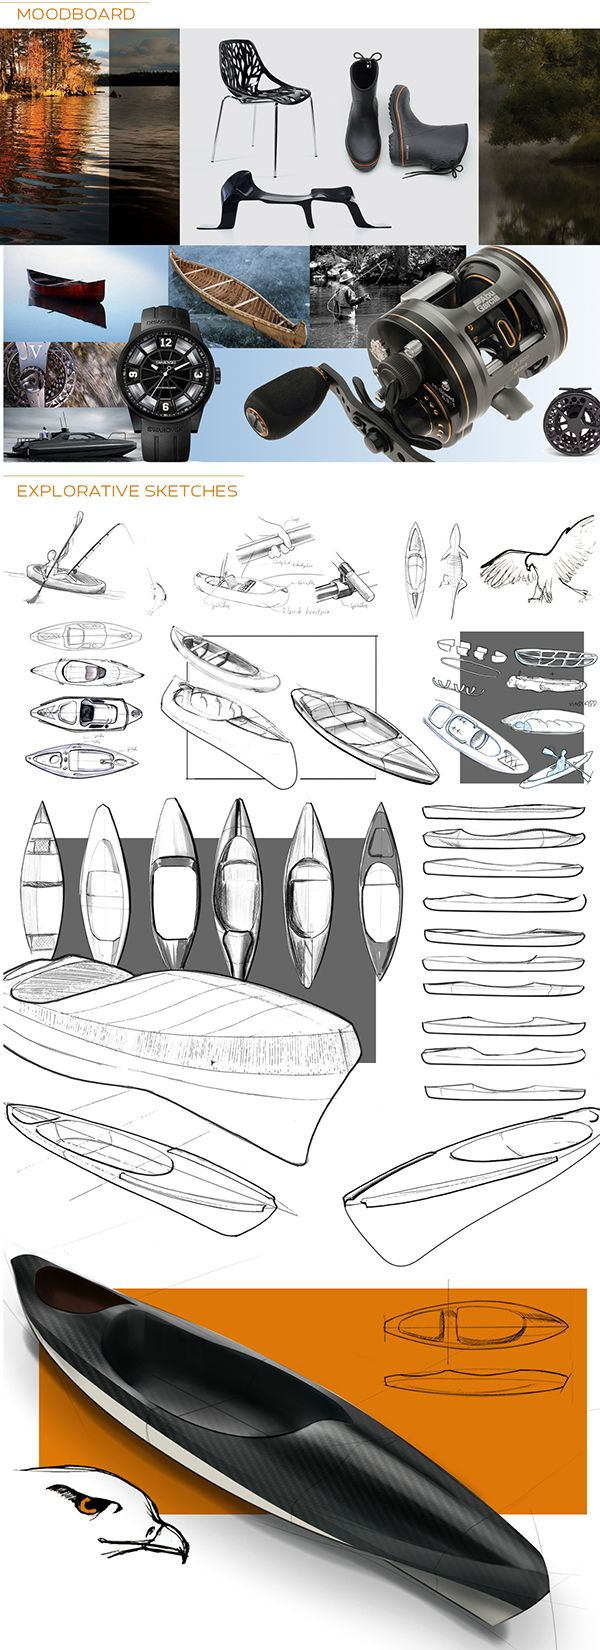 A kayak primarily for the scandinavian fisherman, who wishes to navigate quietly and discretely close to nature. With a design associable to scandinavian landscape and carbon fibre as main material, the kayak is light and portable on land, safe and stable…